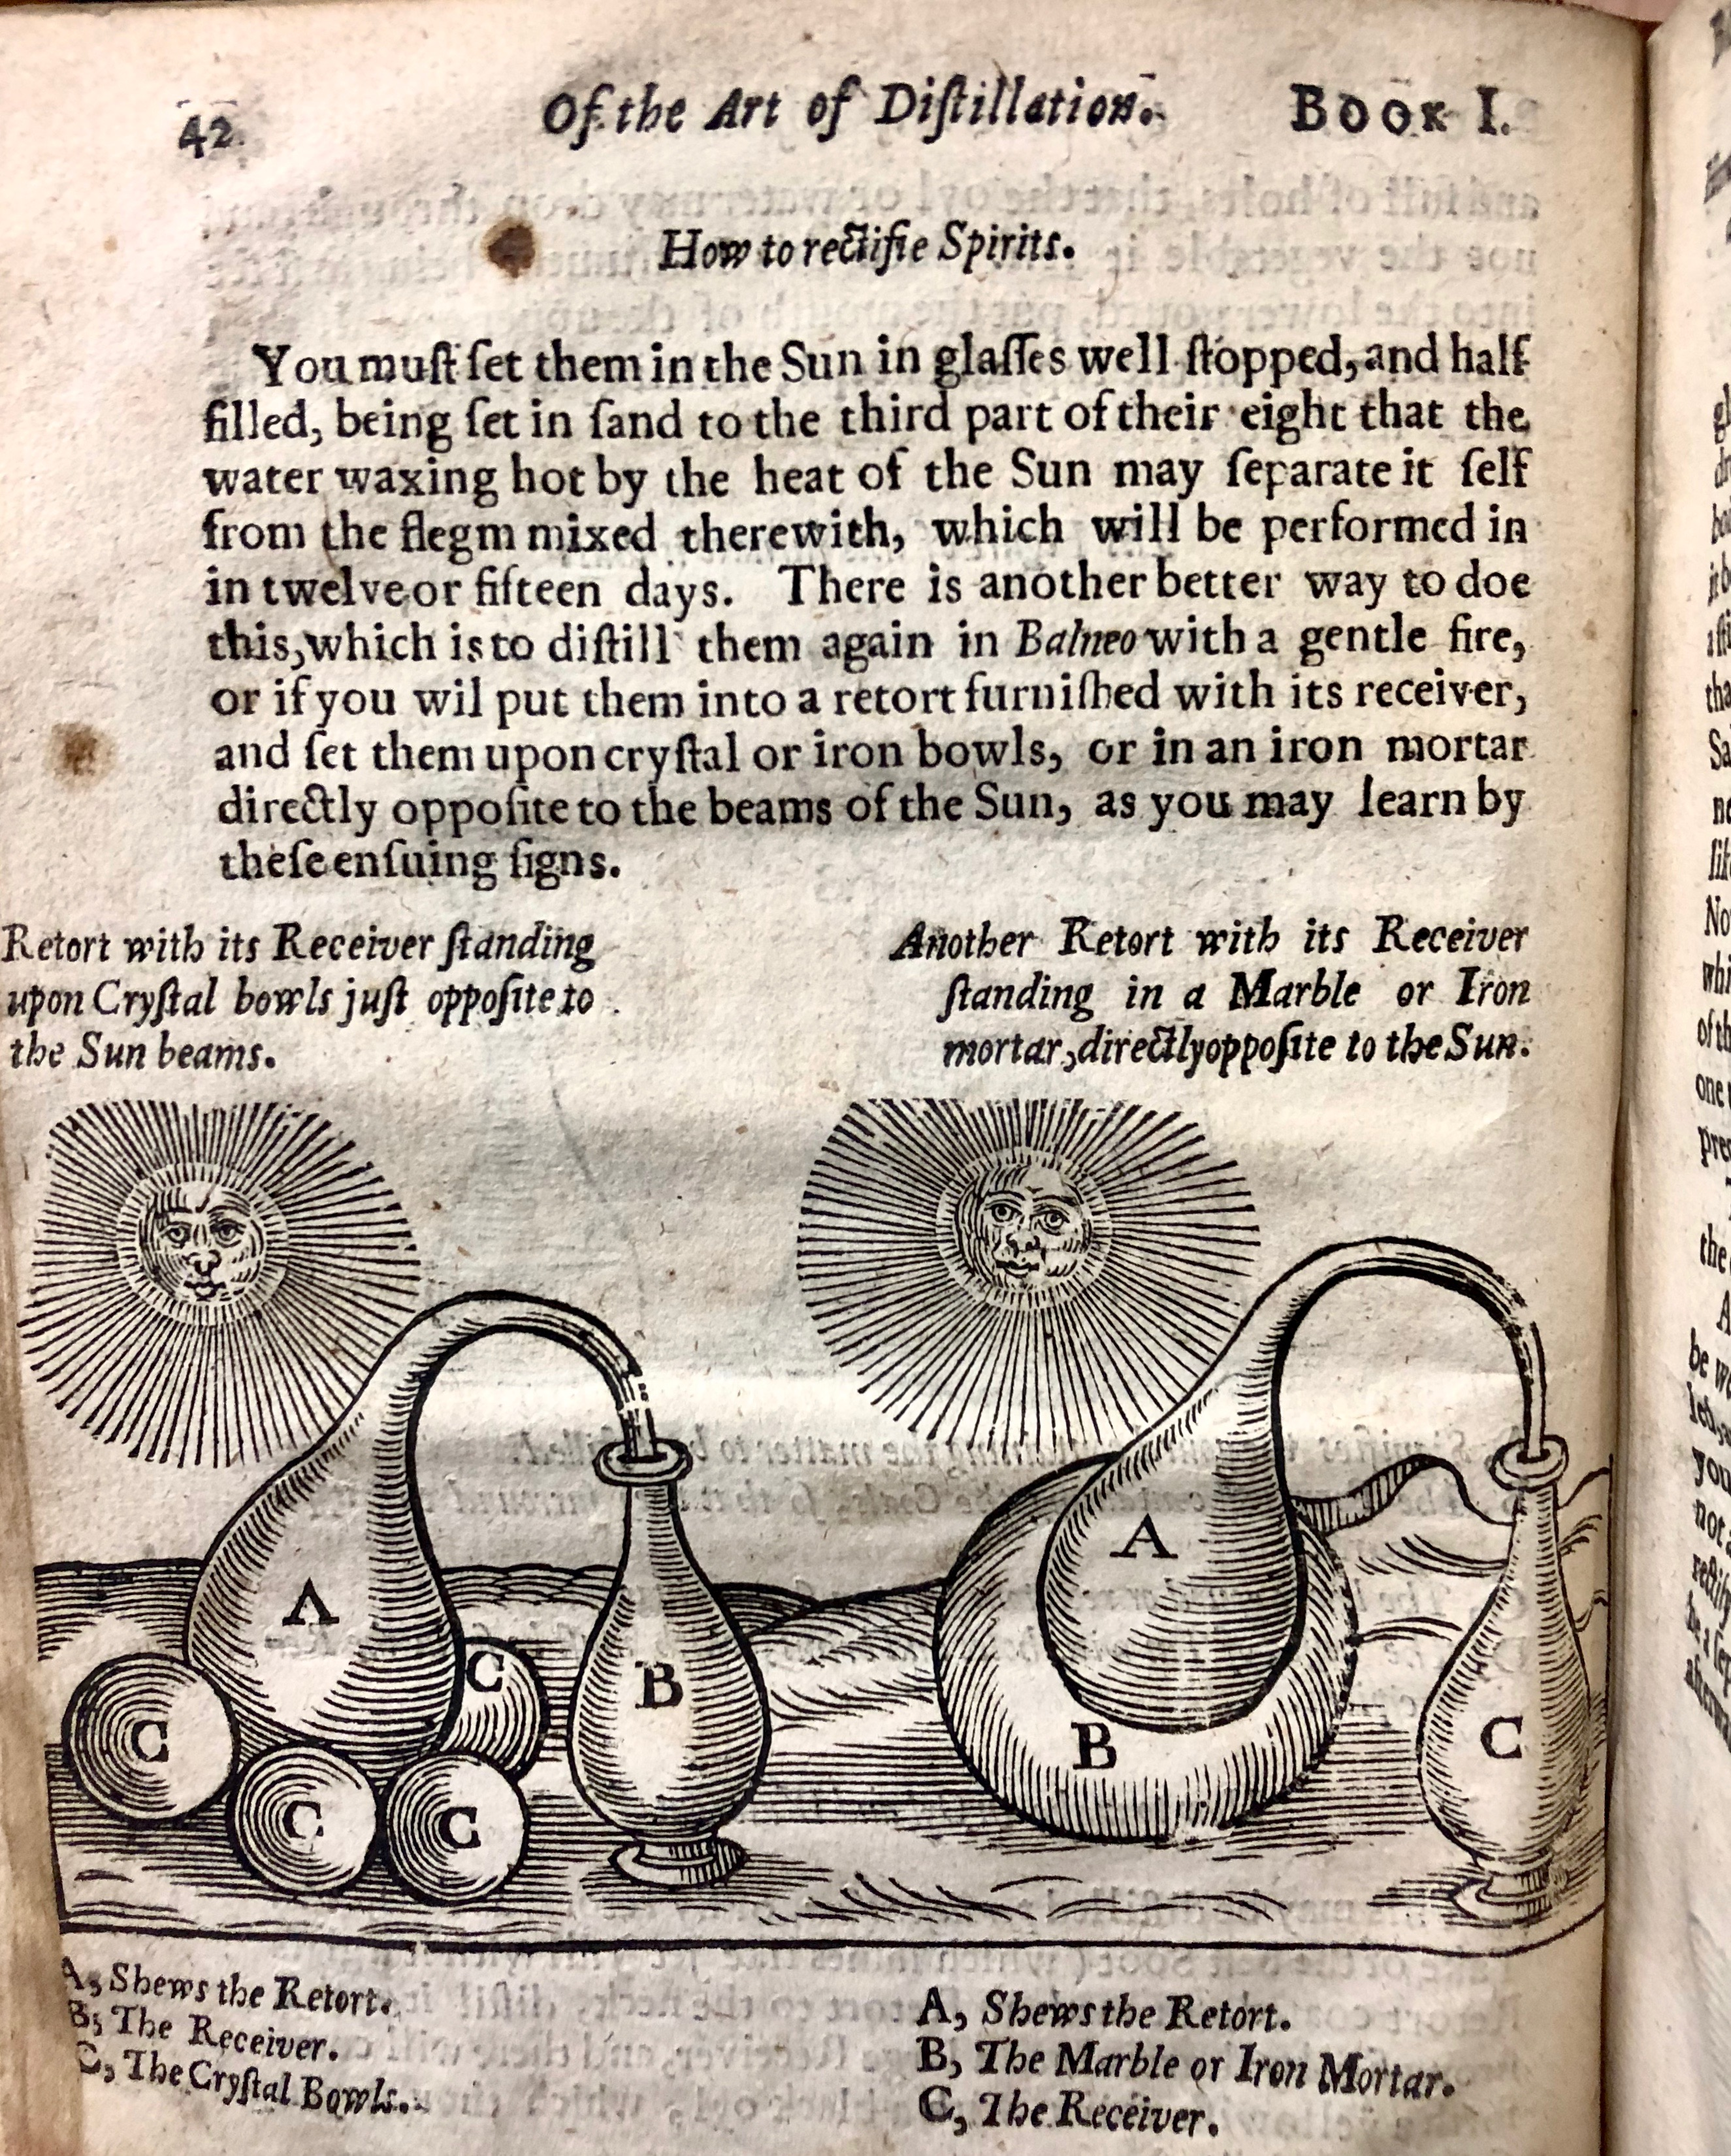 Diagram from ' The art of distillation : or, a treatise of the choicest spagiricall preparations ... furnaces & vessels ... experiments and curiosities ...anatomy of gold and silver' by John French, 1653, London. (Maddison Collection 2A25, F10505800)